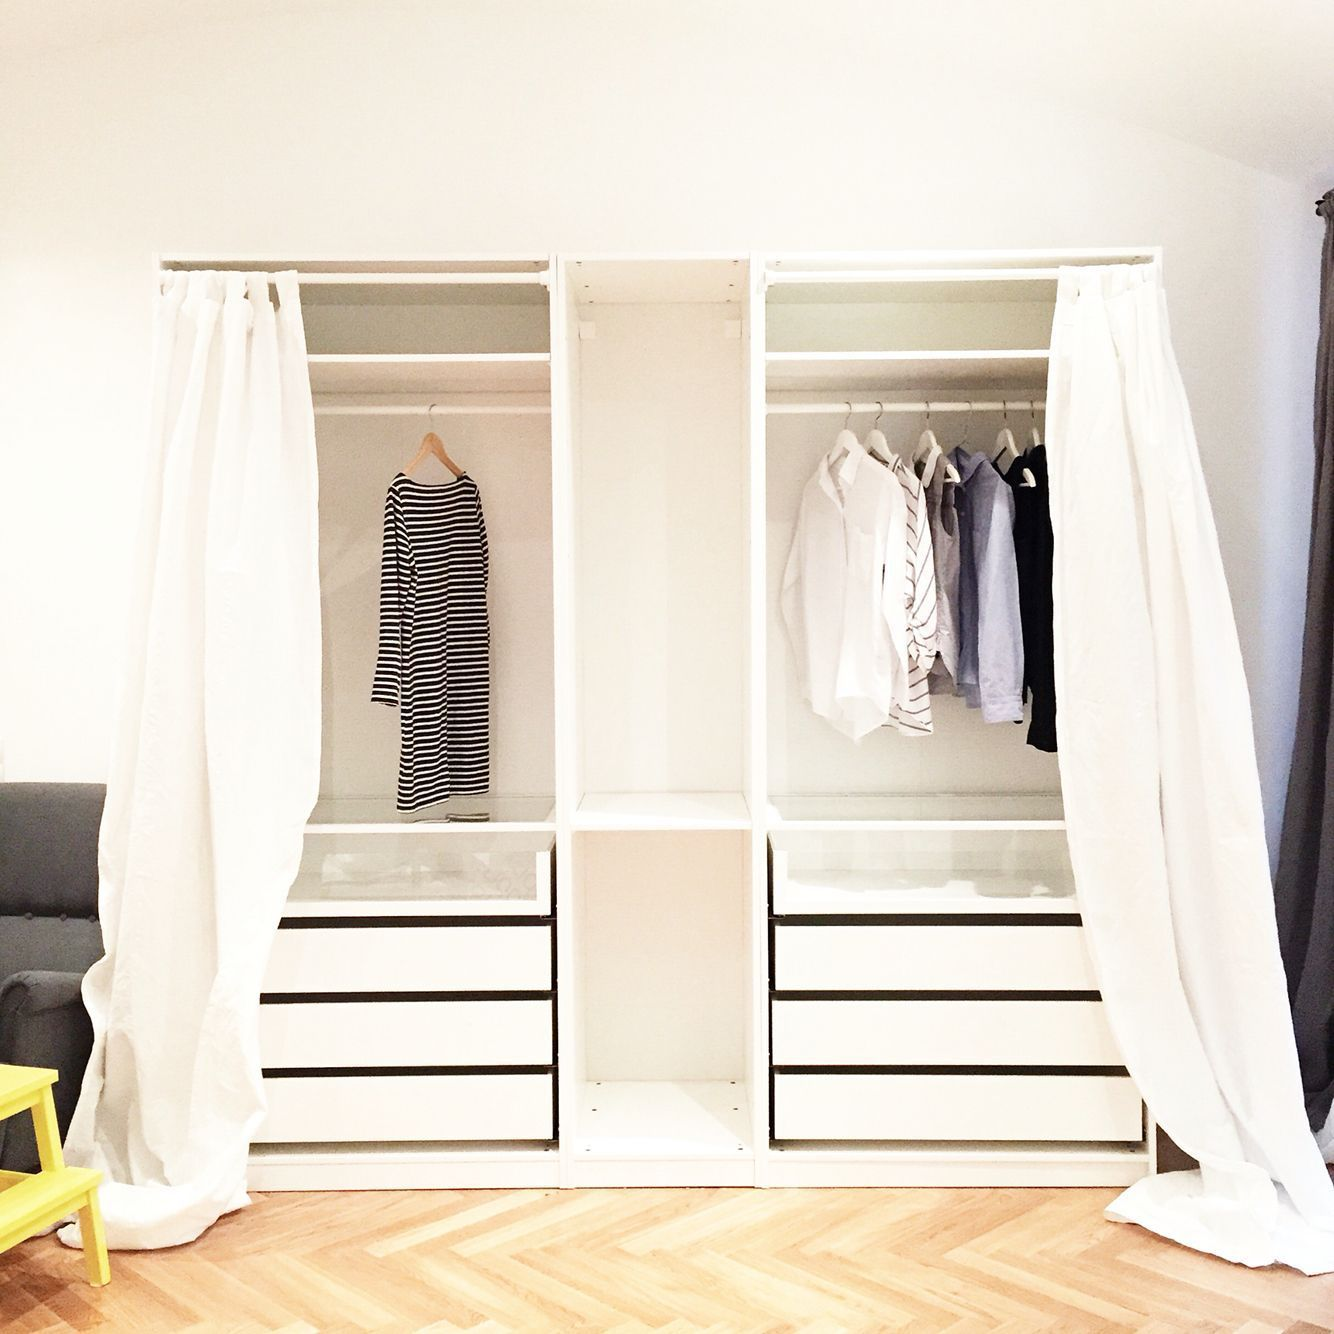 53 The Best Design An Organised Open Wardrobe Avec Images Idee